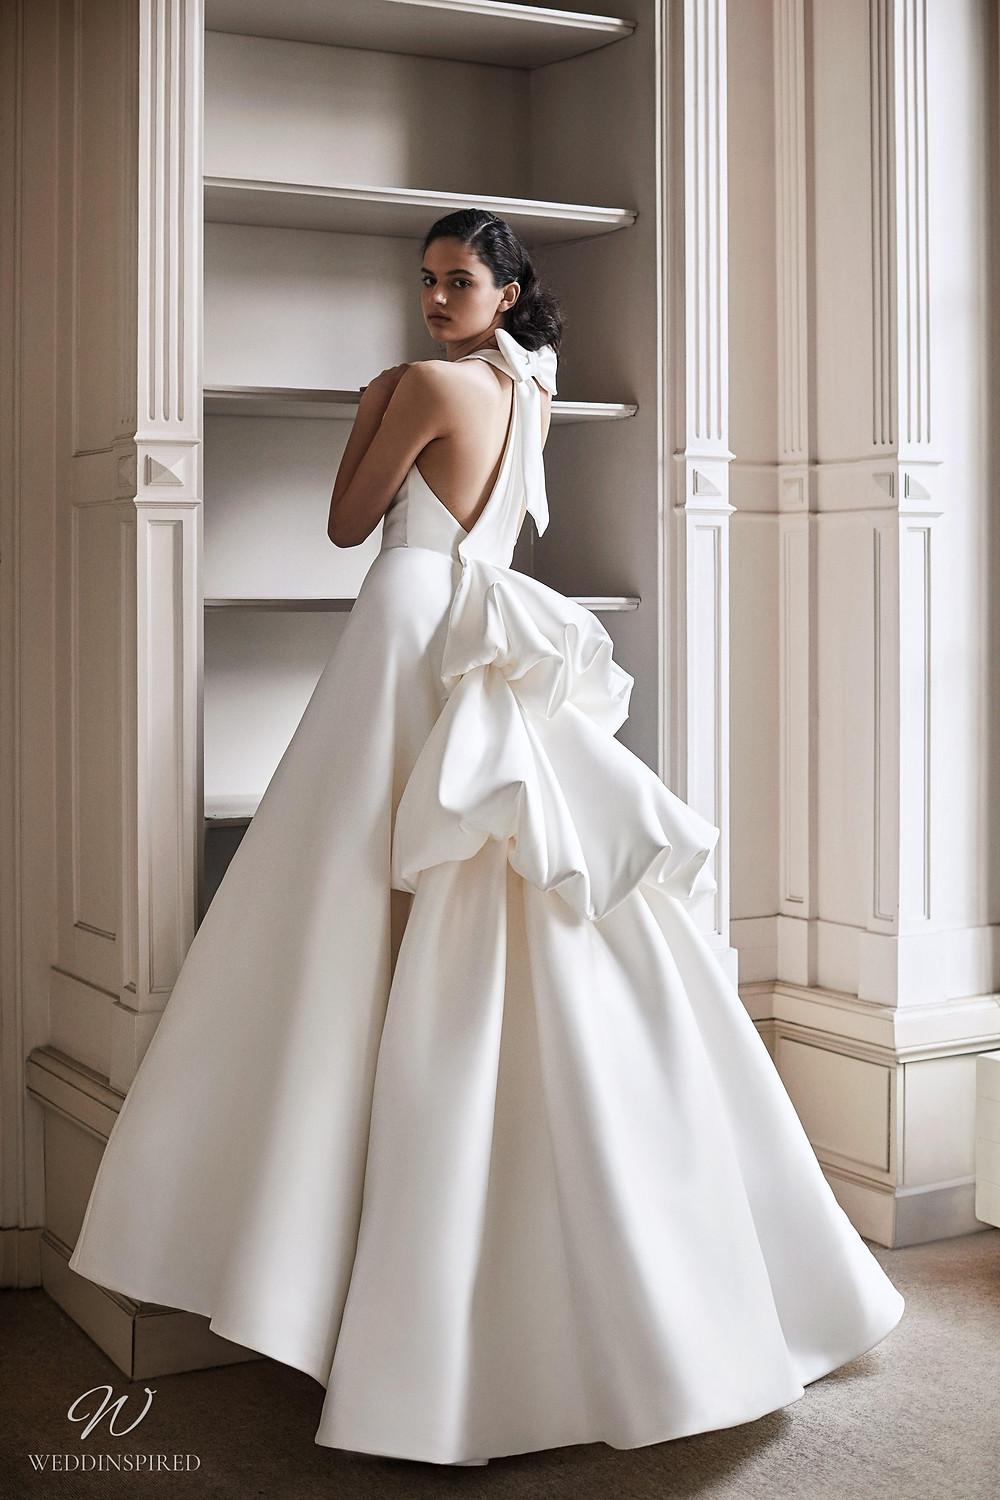 A Viktor & Rolf 2021 princess ball gown wedding dress with ruffles and a bow